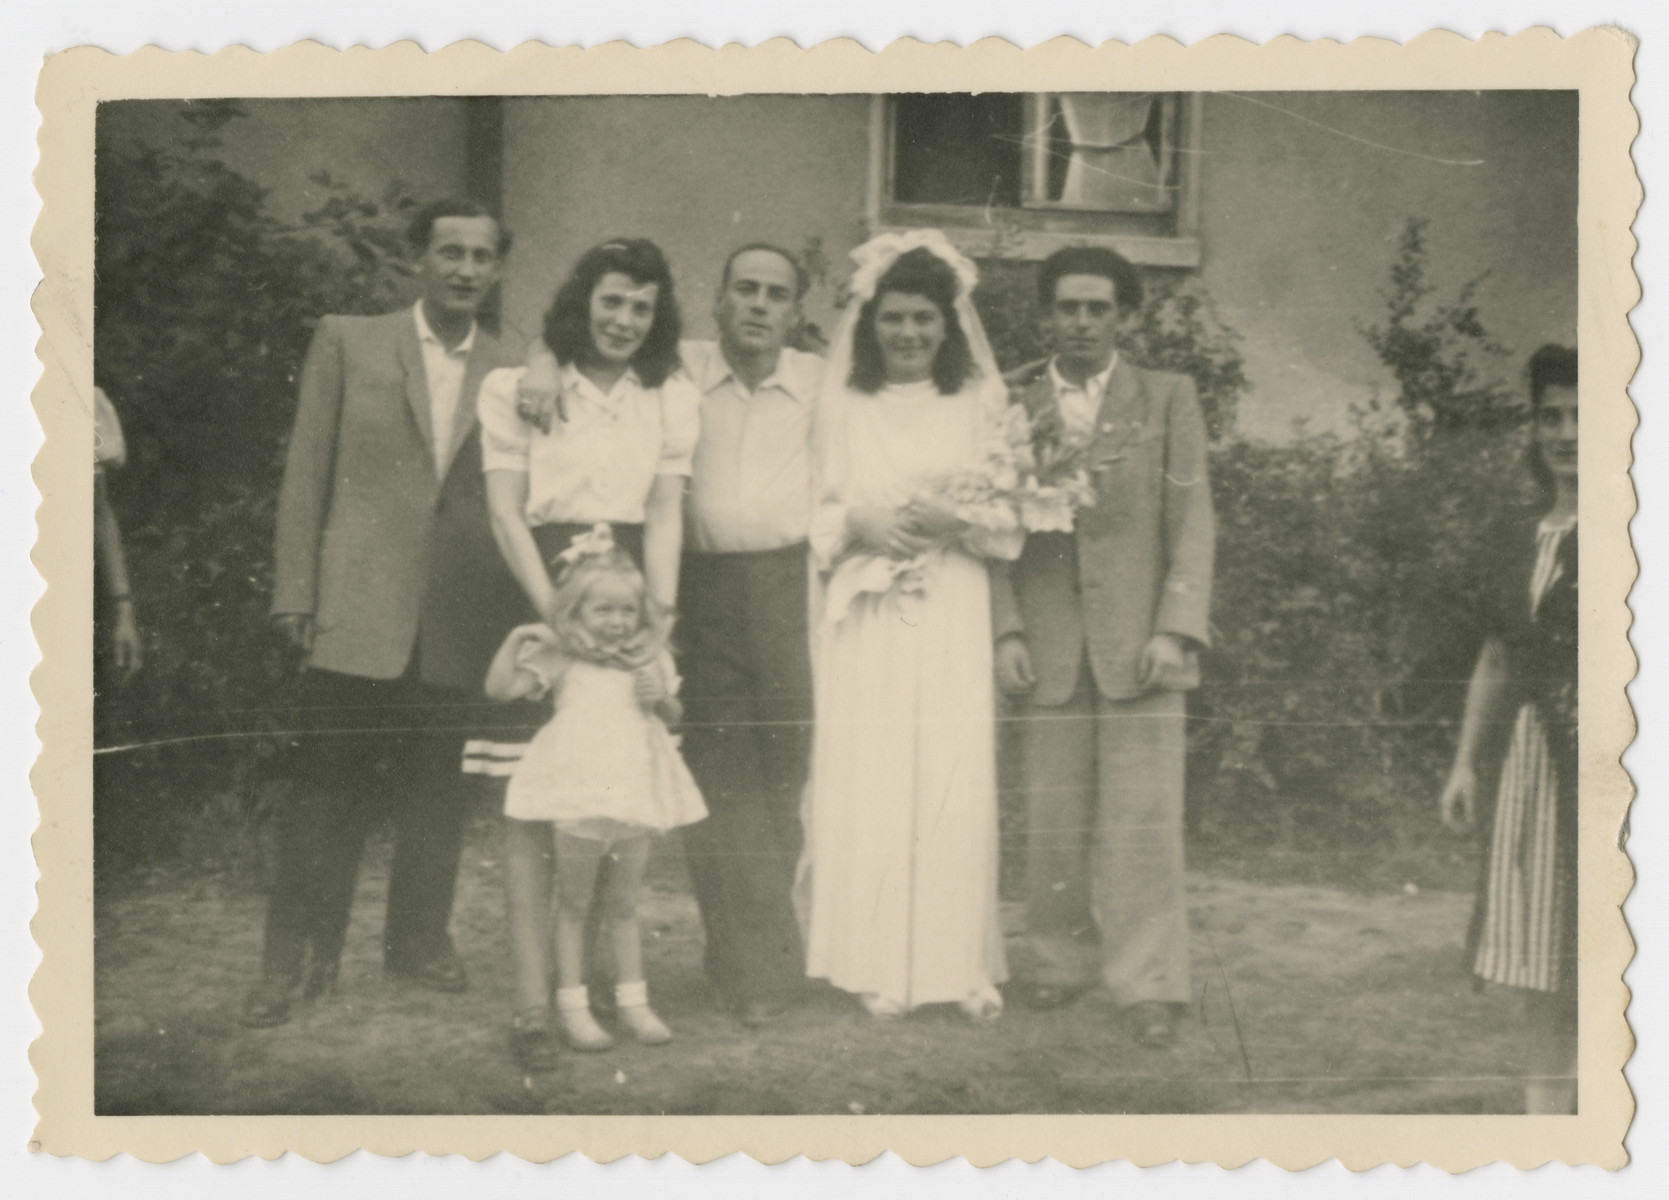 A few friends pose with David and Anna Rosenzweig at their wedding.  Their cousin Ben Rosenzweig is on the far left.